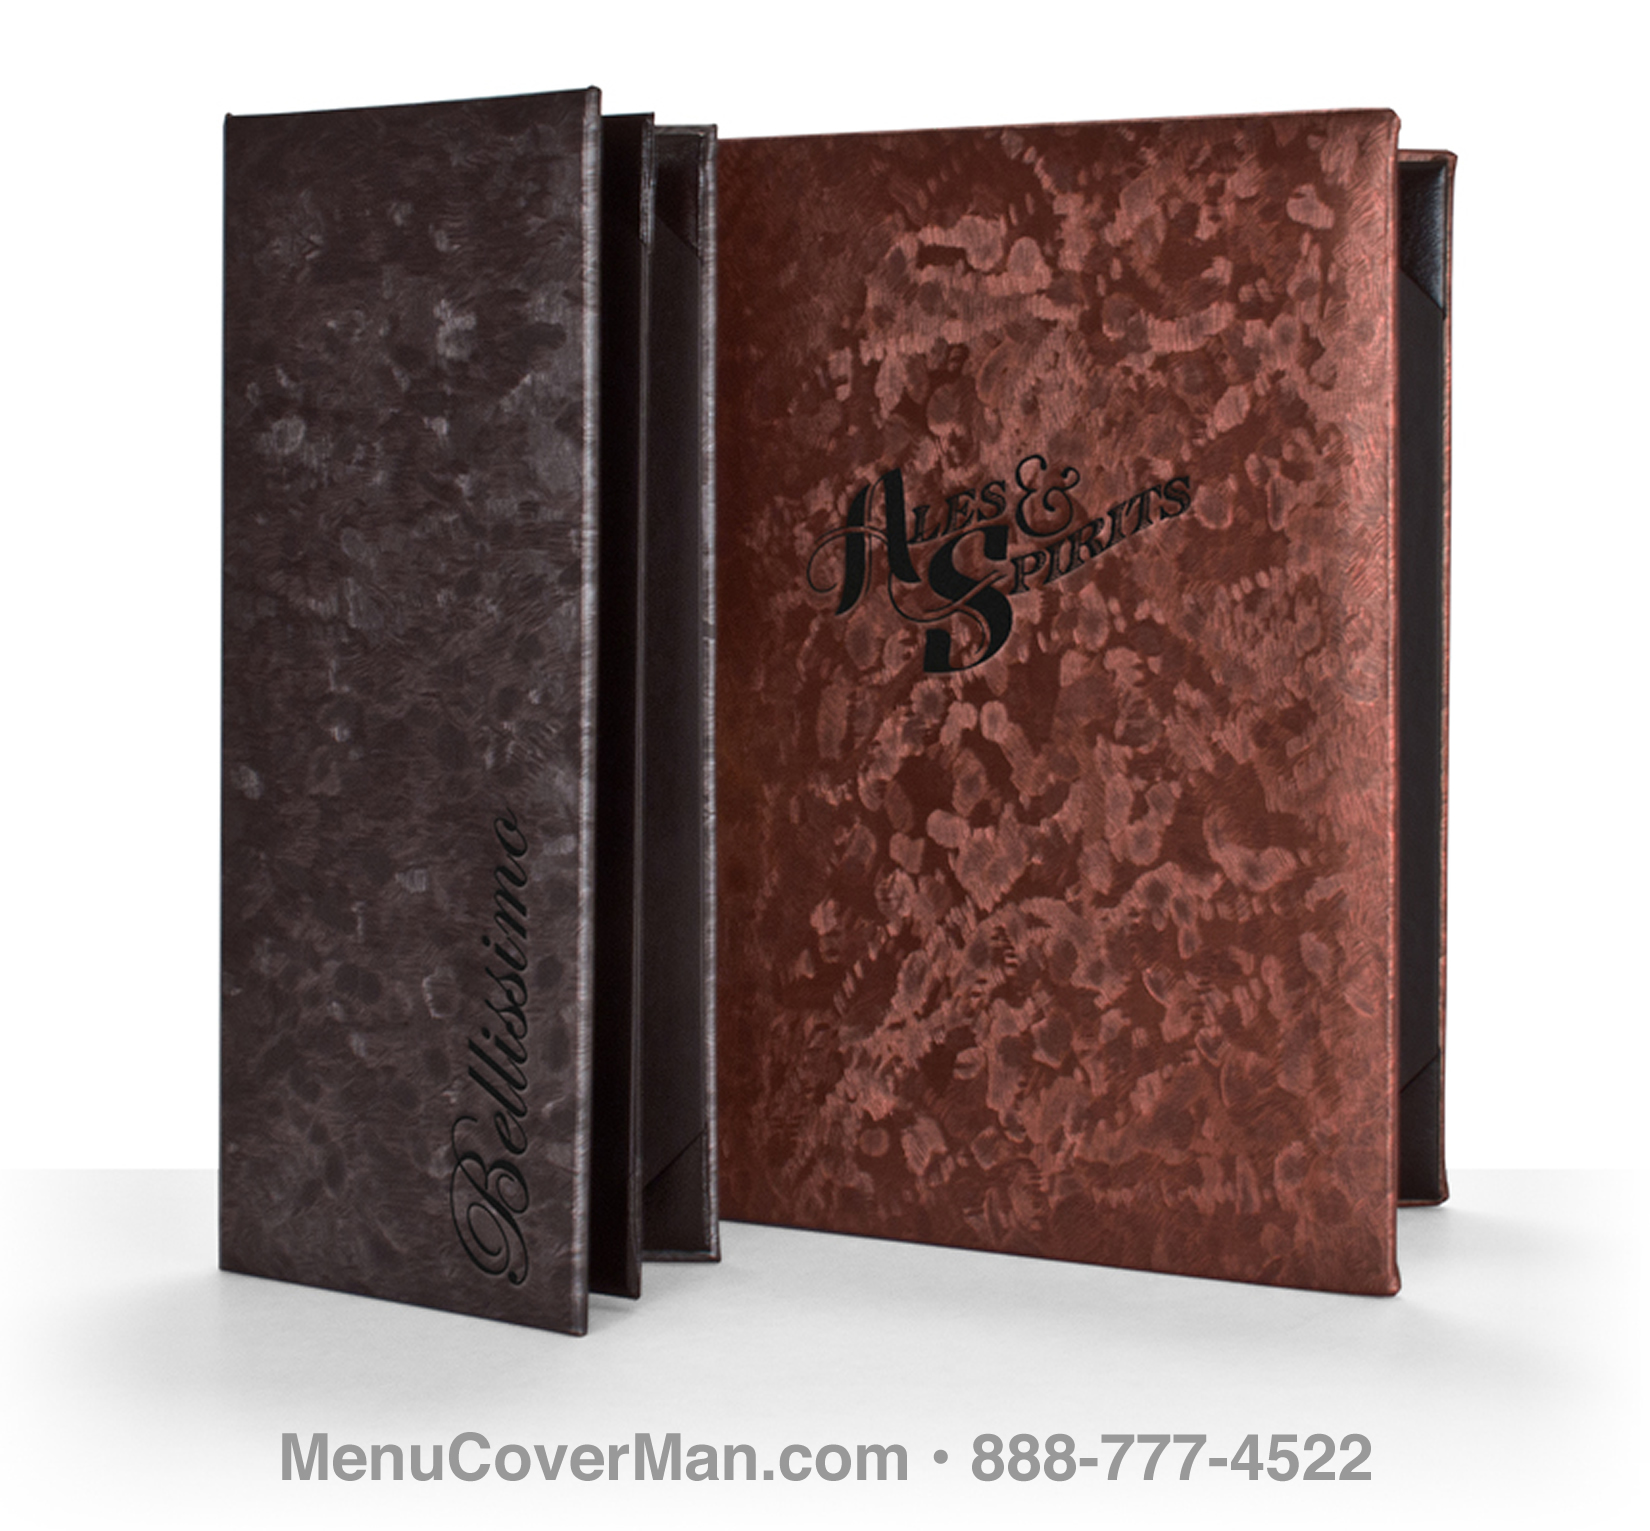 Brushed Metallic Menu Covers Frontspiece.